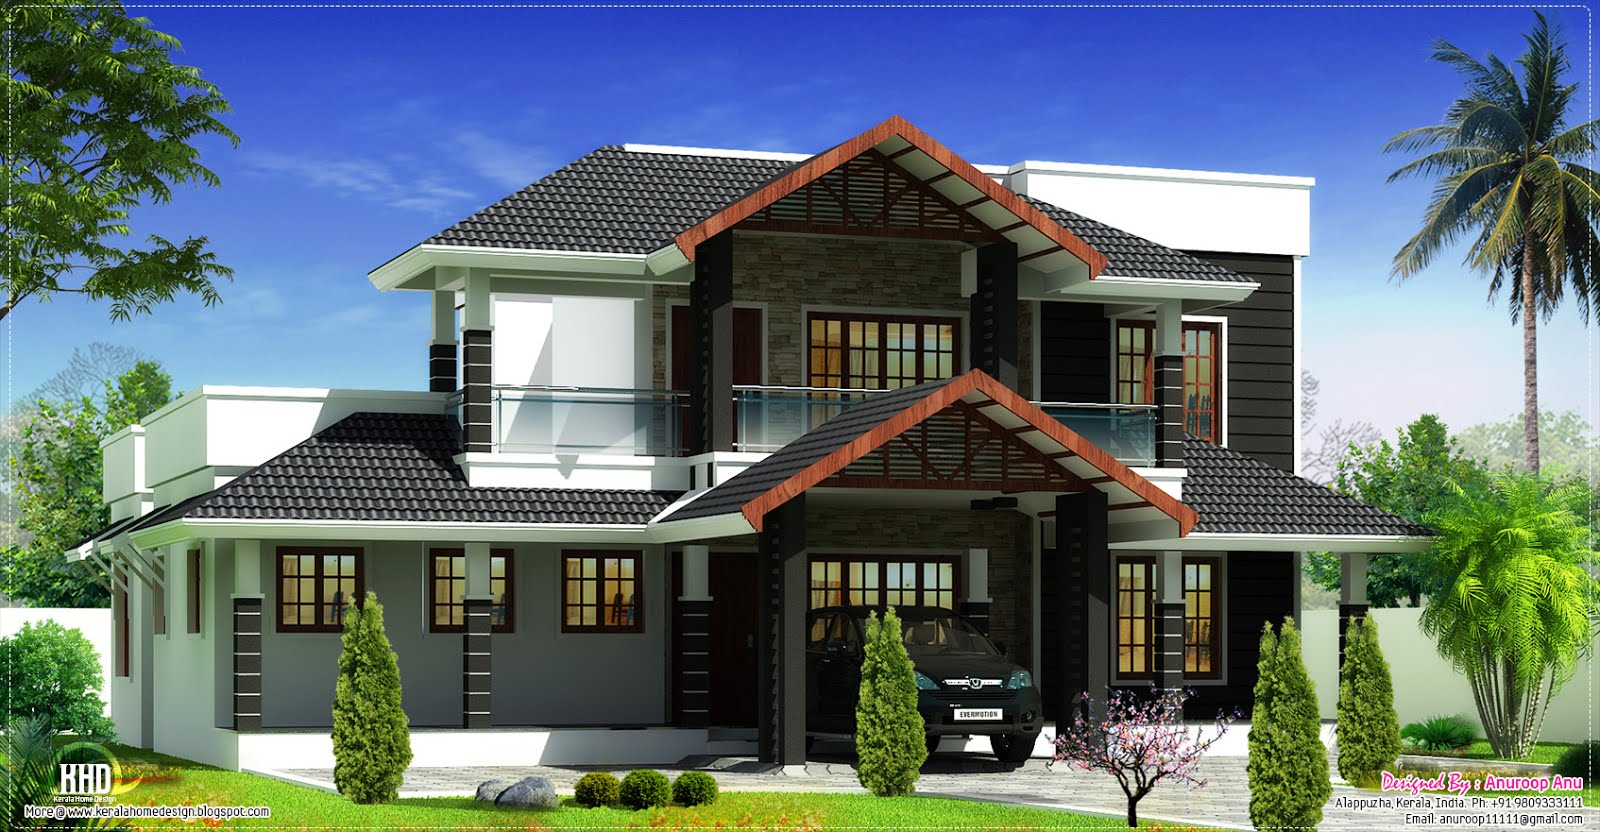 Ground Floor Villa Elevation : Beautiful sloping roof villa elevation design kerala